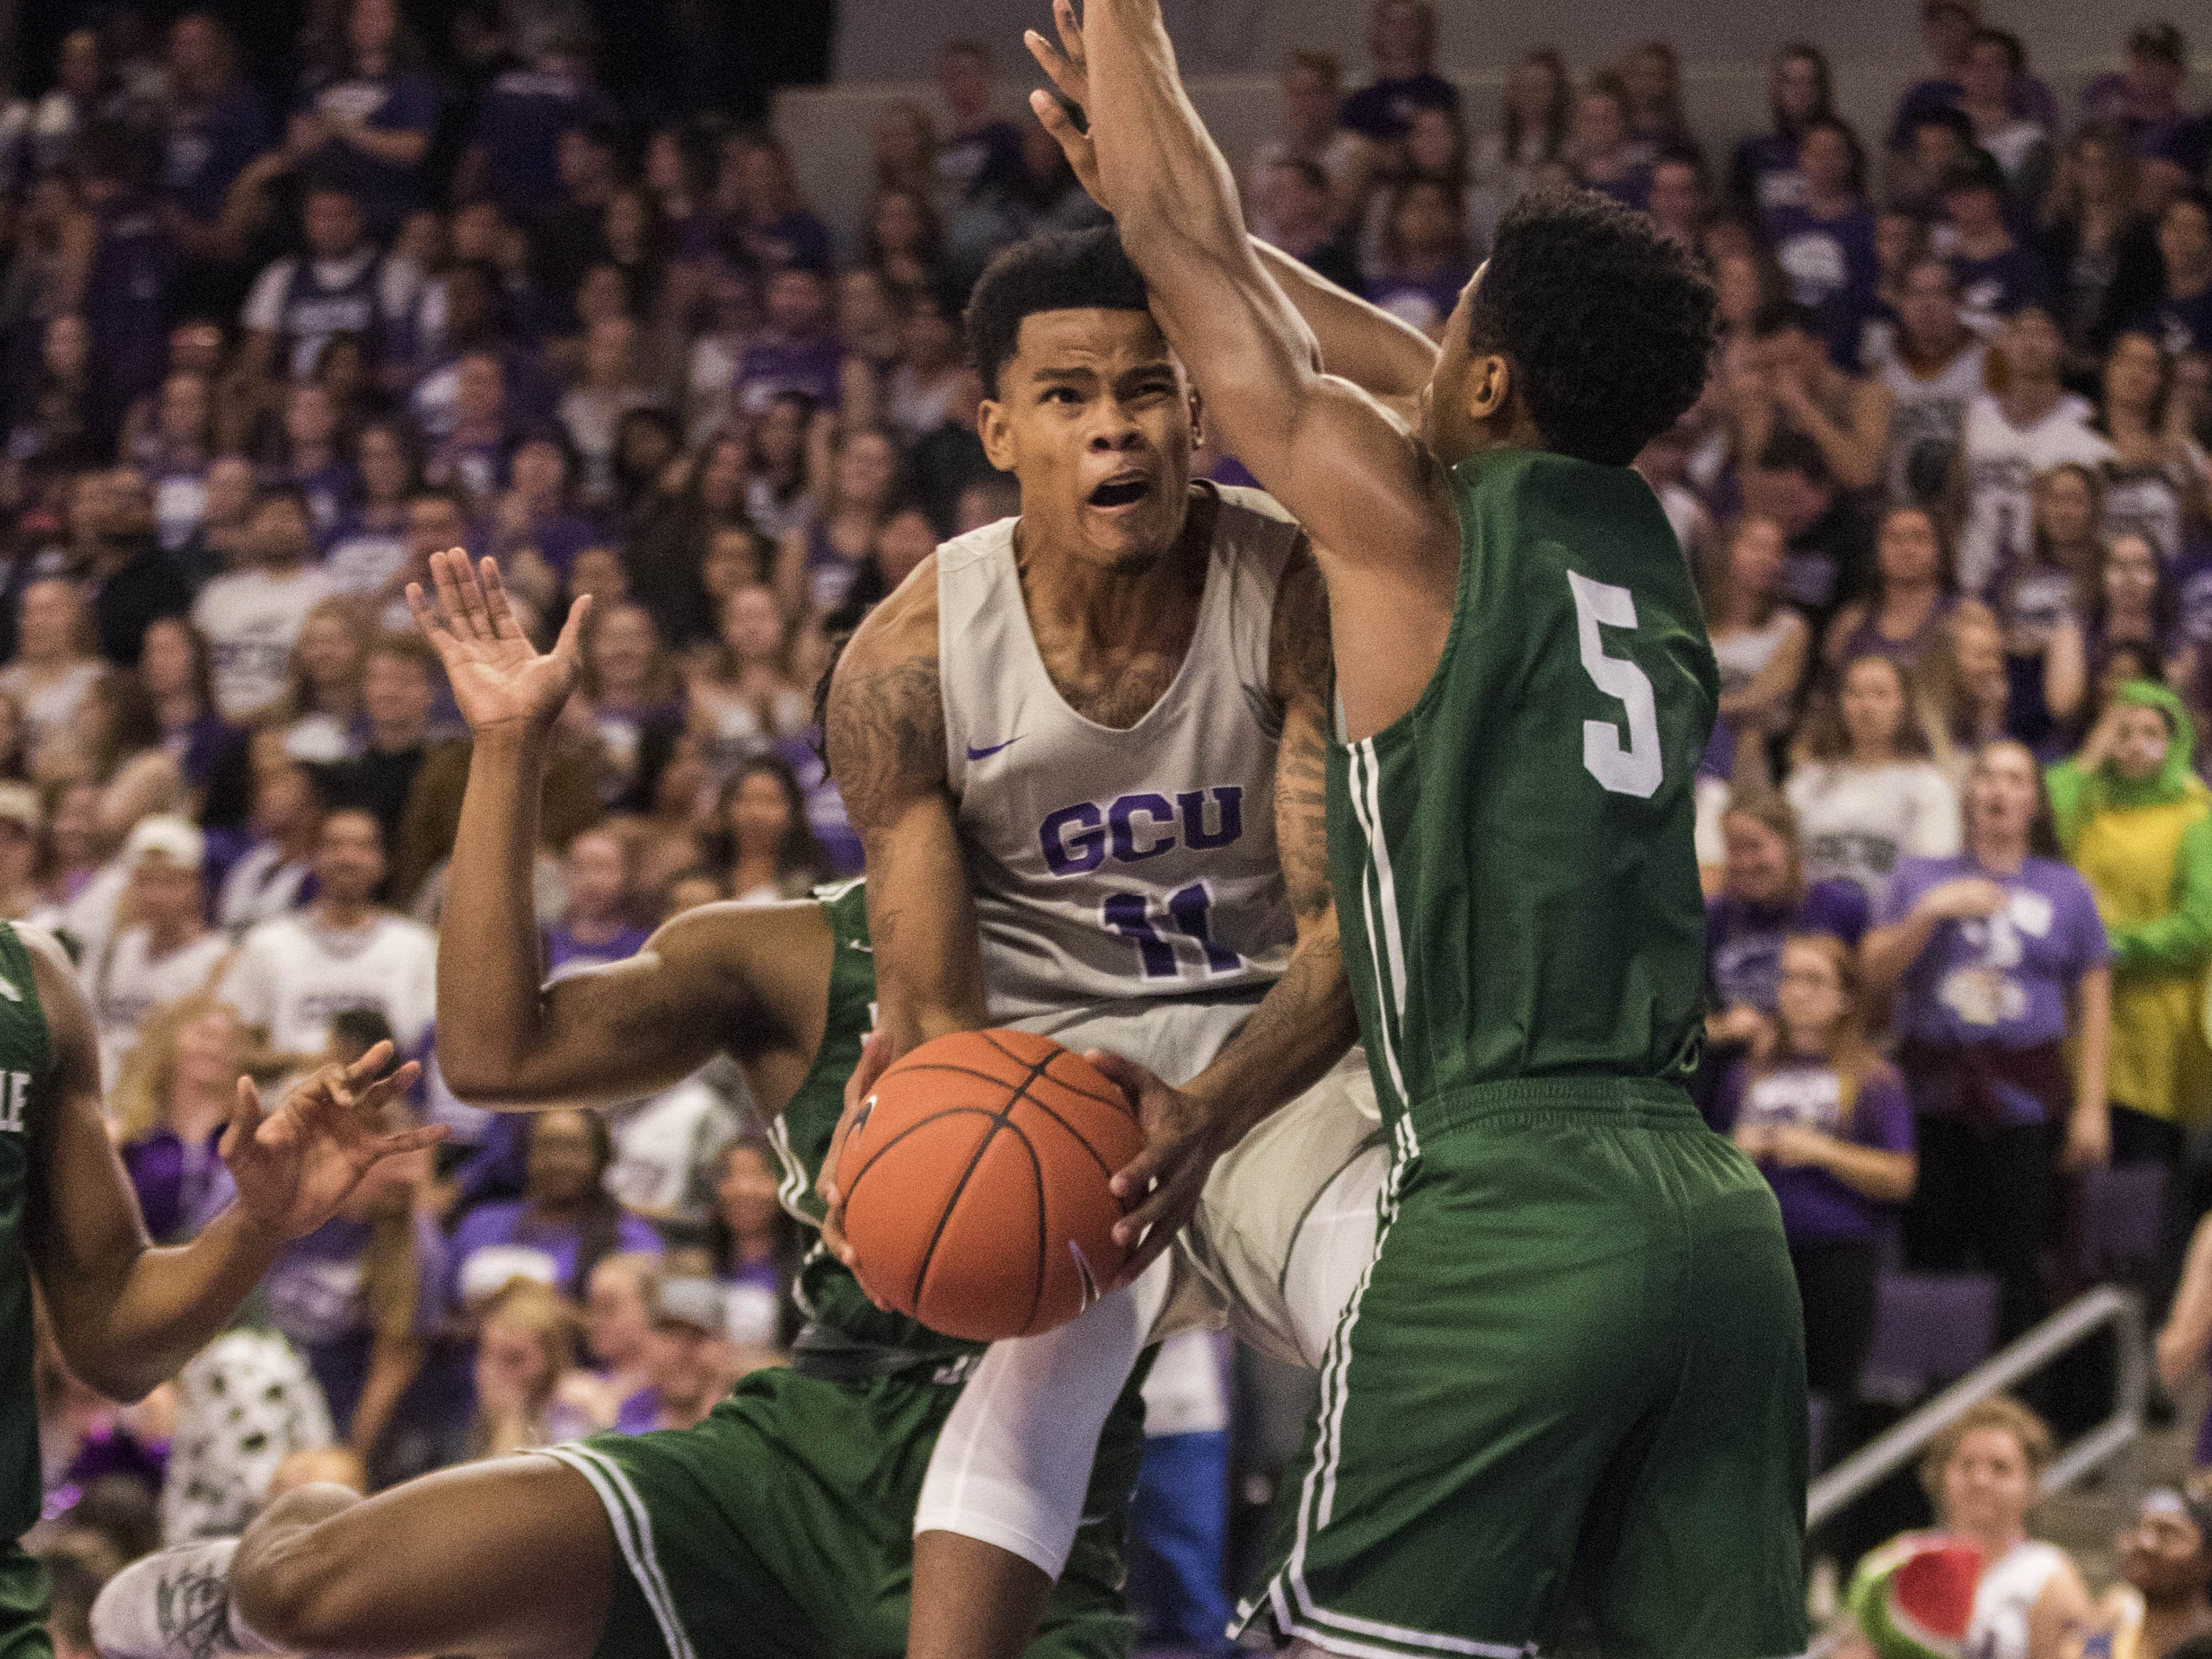 Grand Canyon University's Damari Milstead (11) drives to the basket against Jacksonville's DeAnthony McCallum (5) and Aamahne Santos (10) during the first half of their game in Phoenix, Monday, Nov.11,  2018.